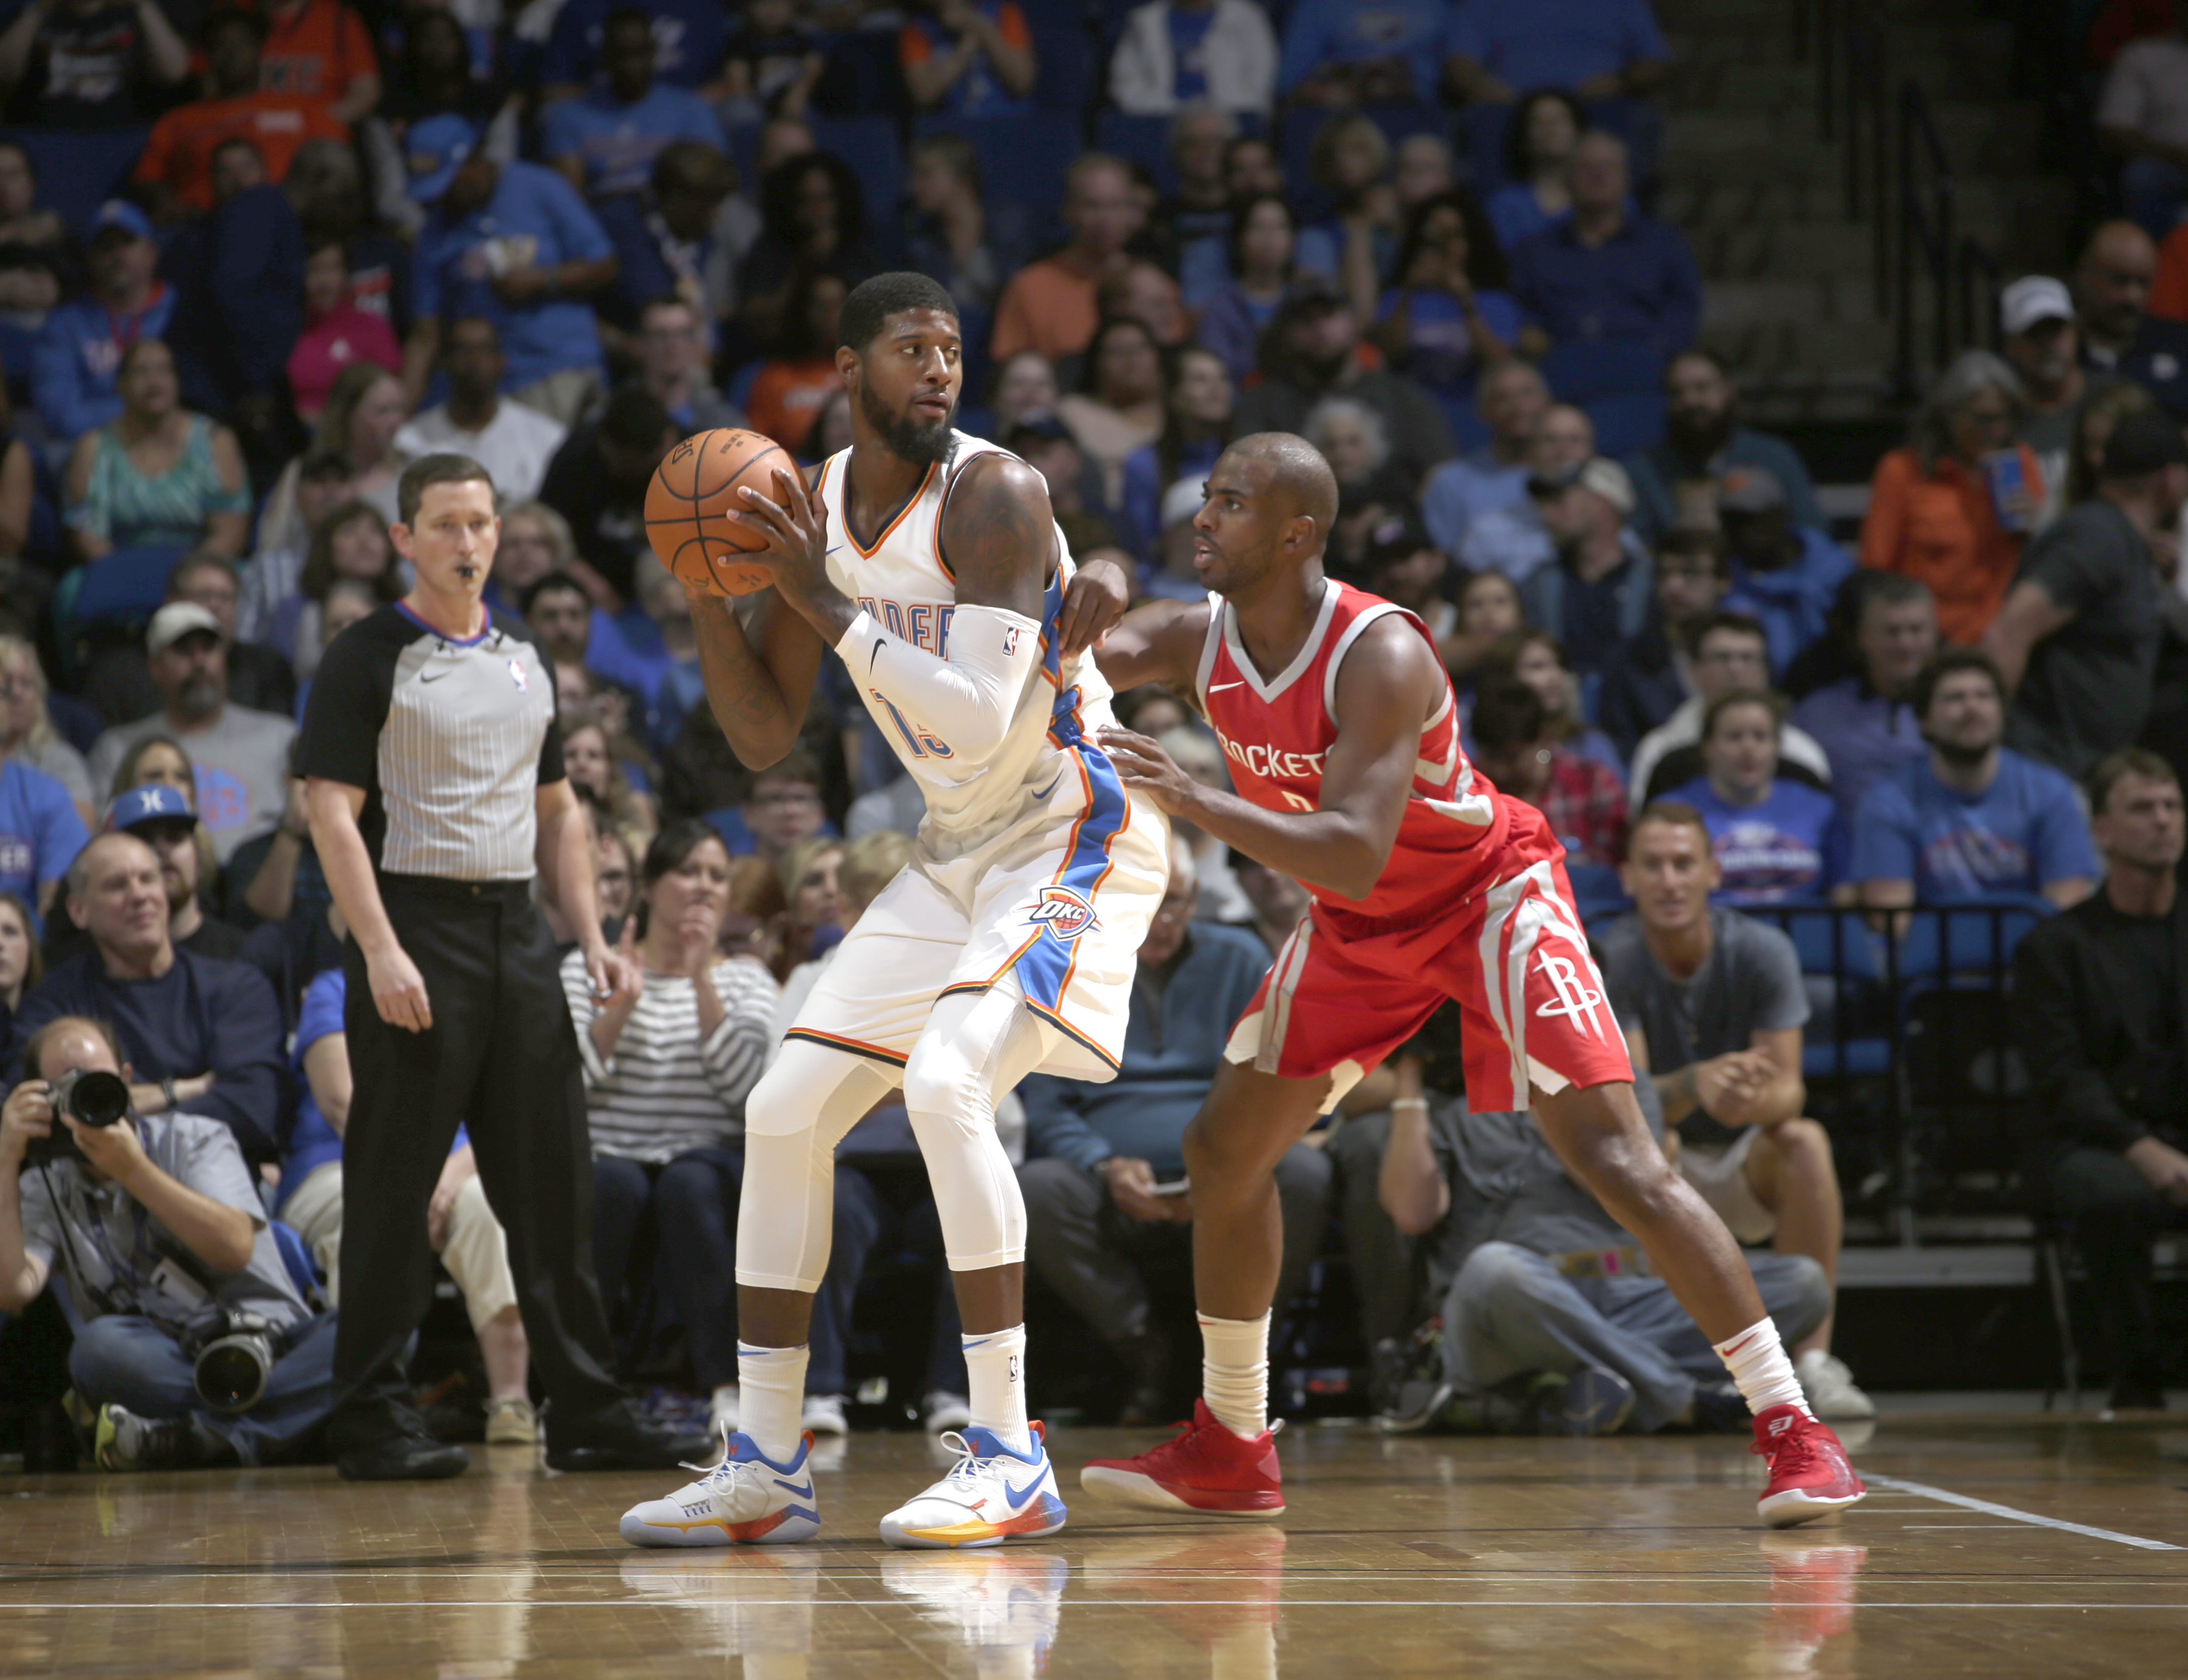 Basketball: Steven Adams' Oklahoma suffer scare in narrow win